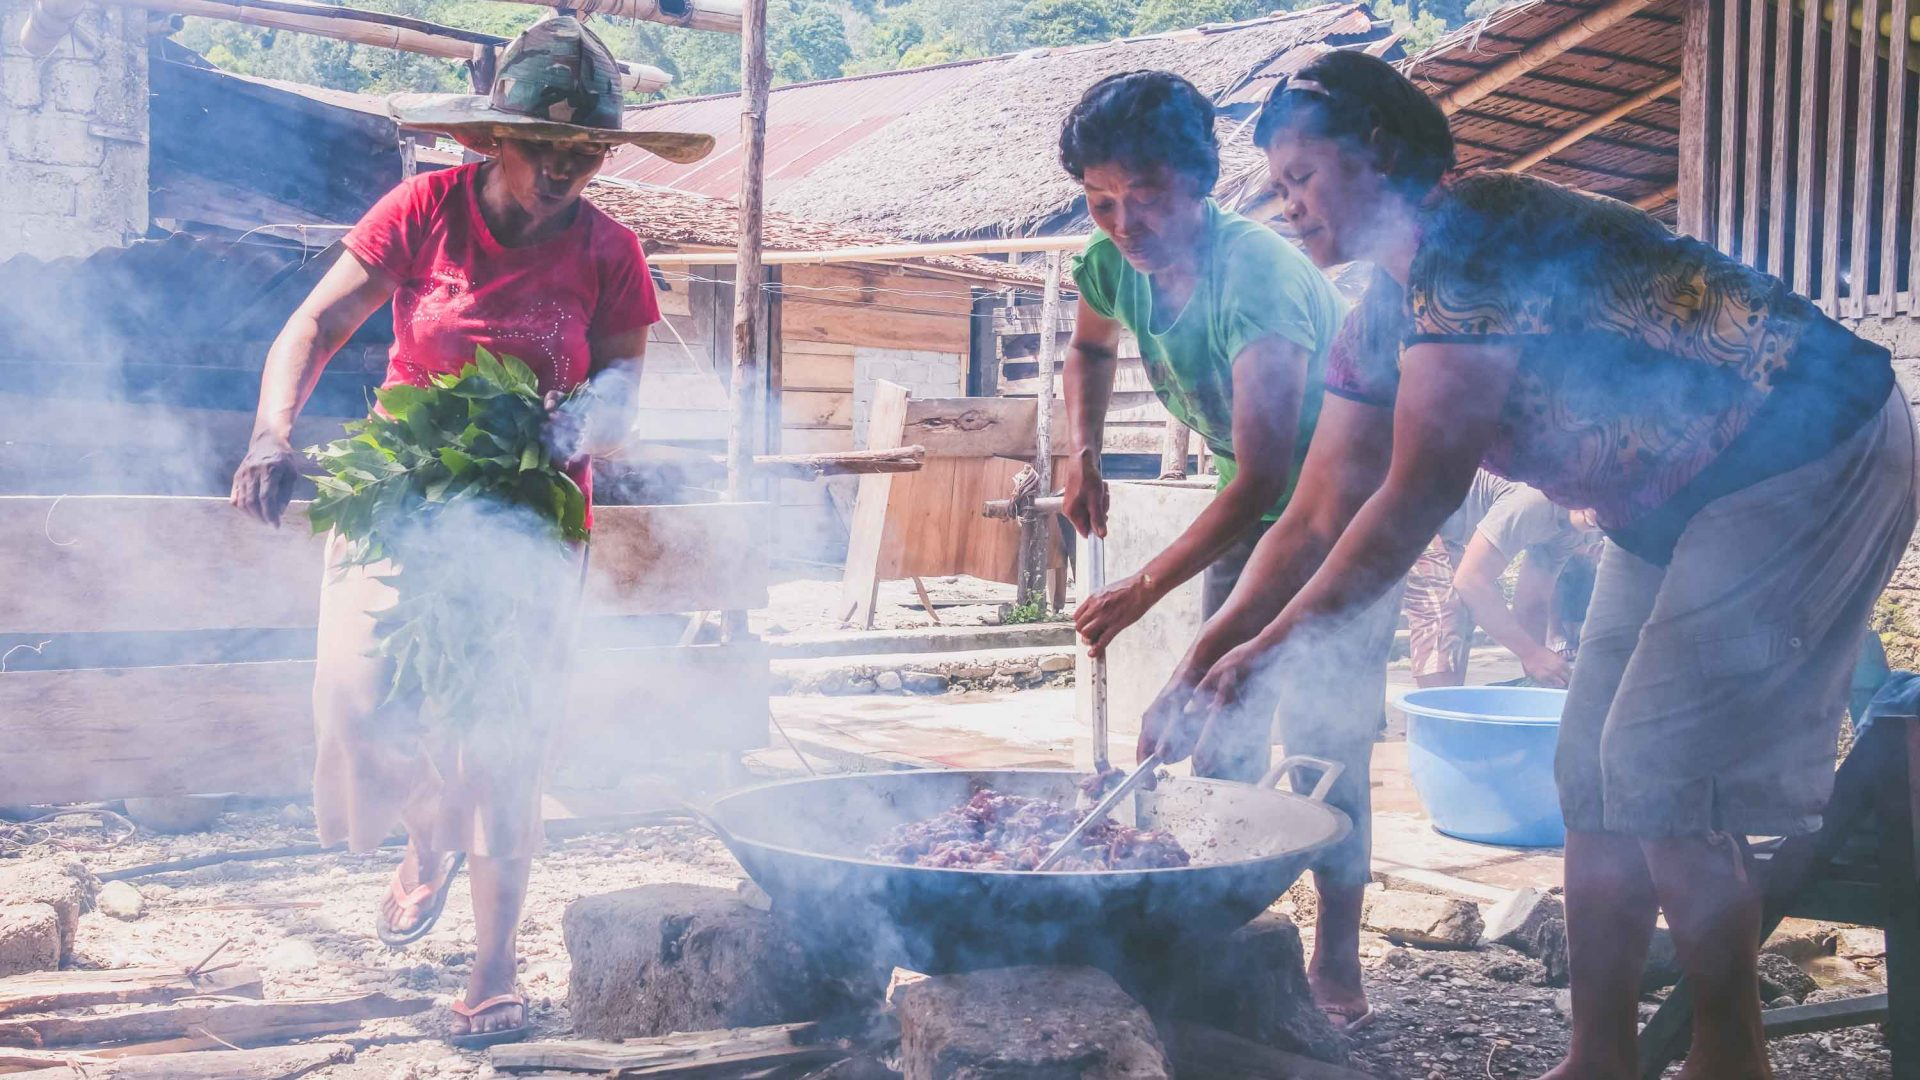 Women barbeque in the village of Bancea in Indonesia.